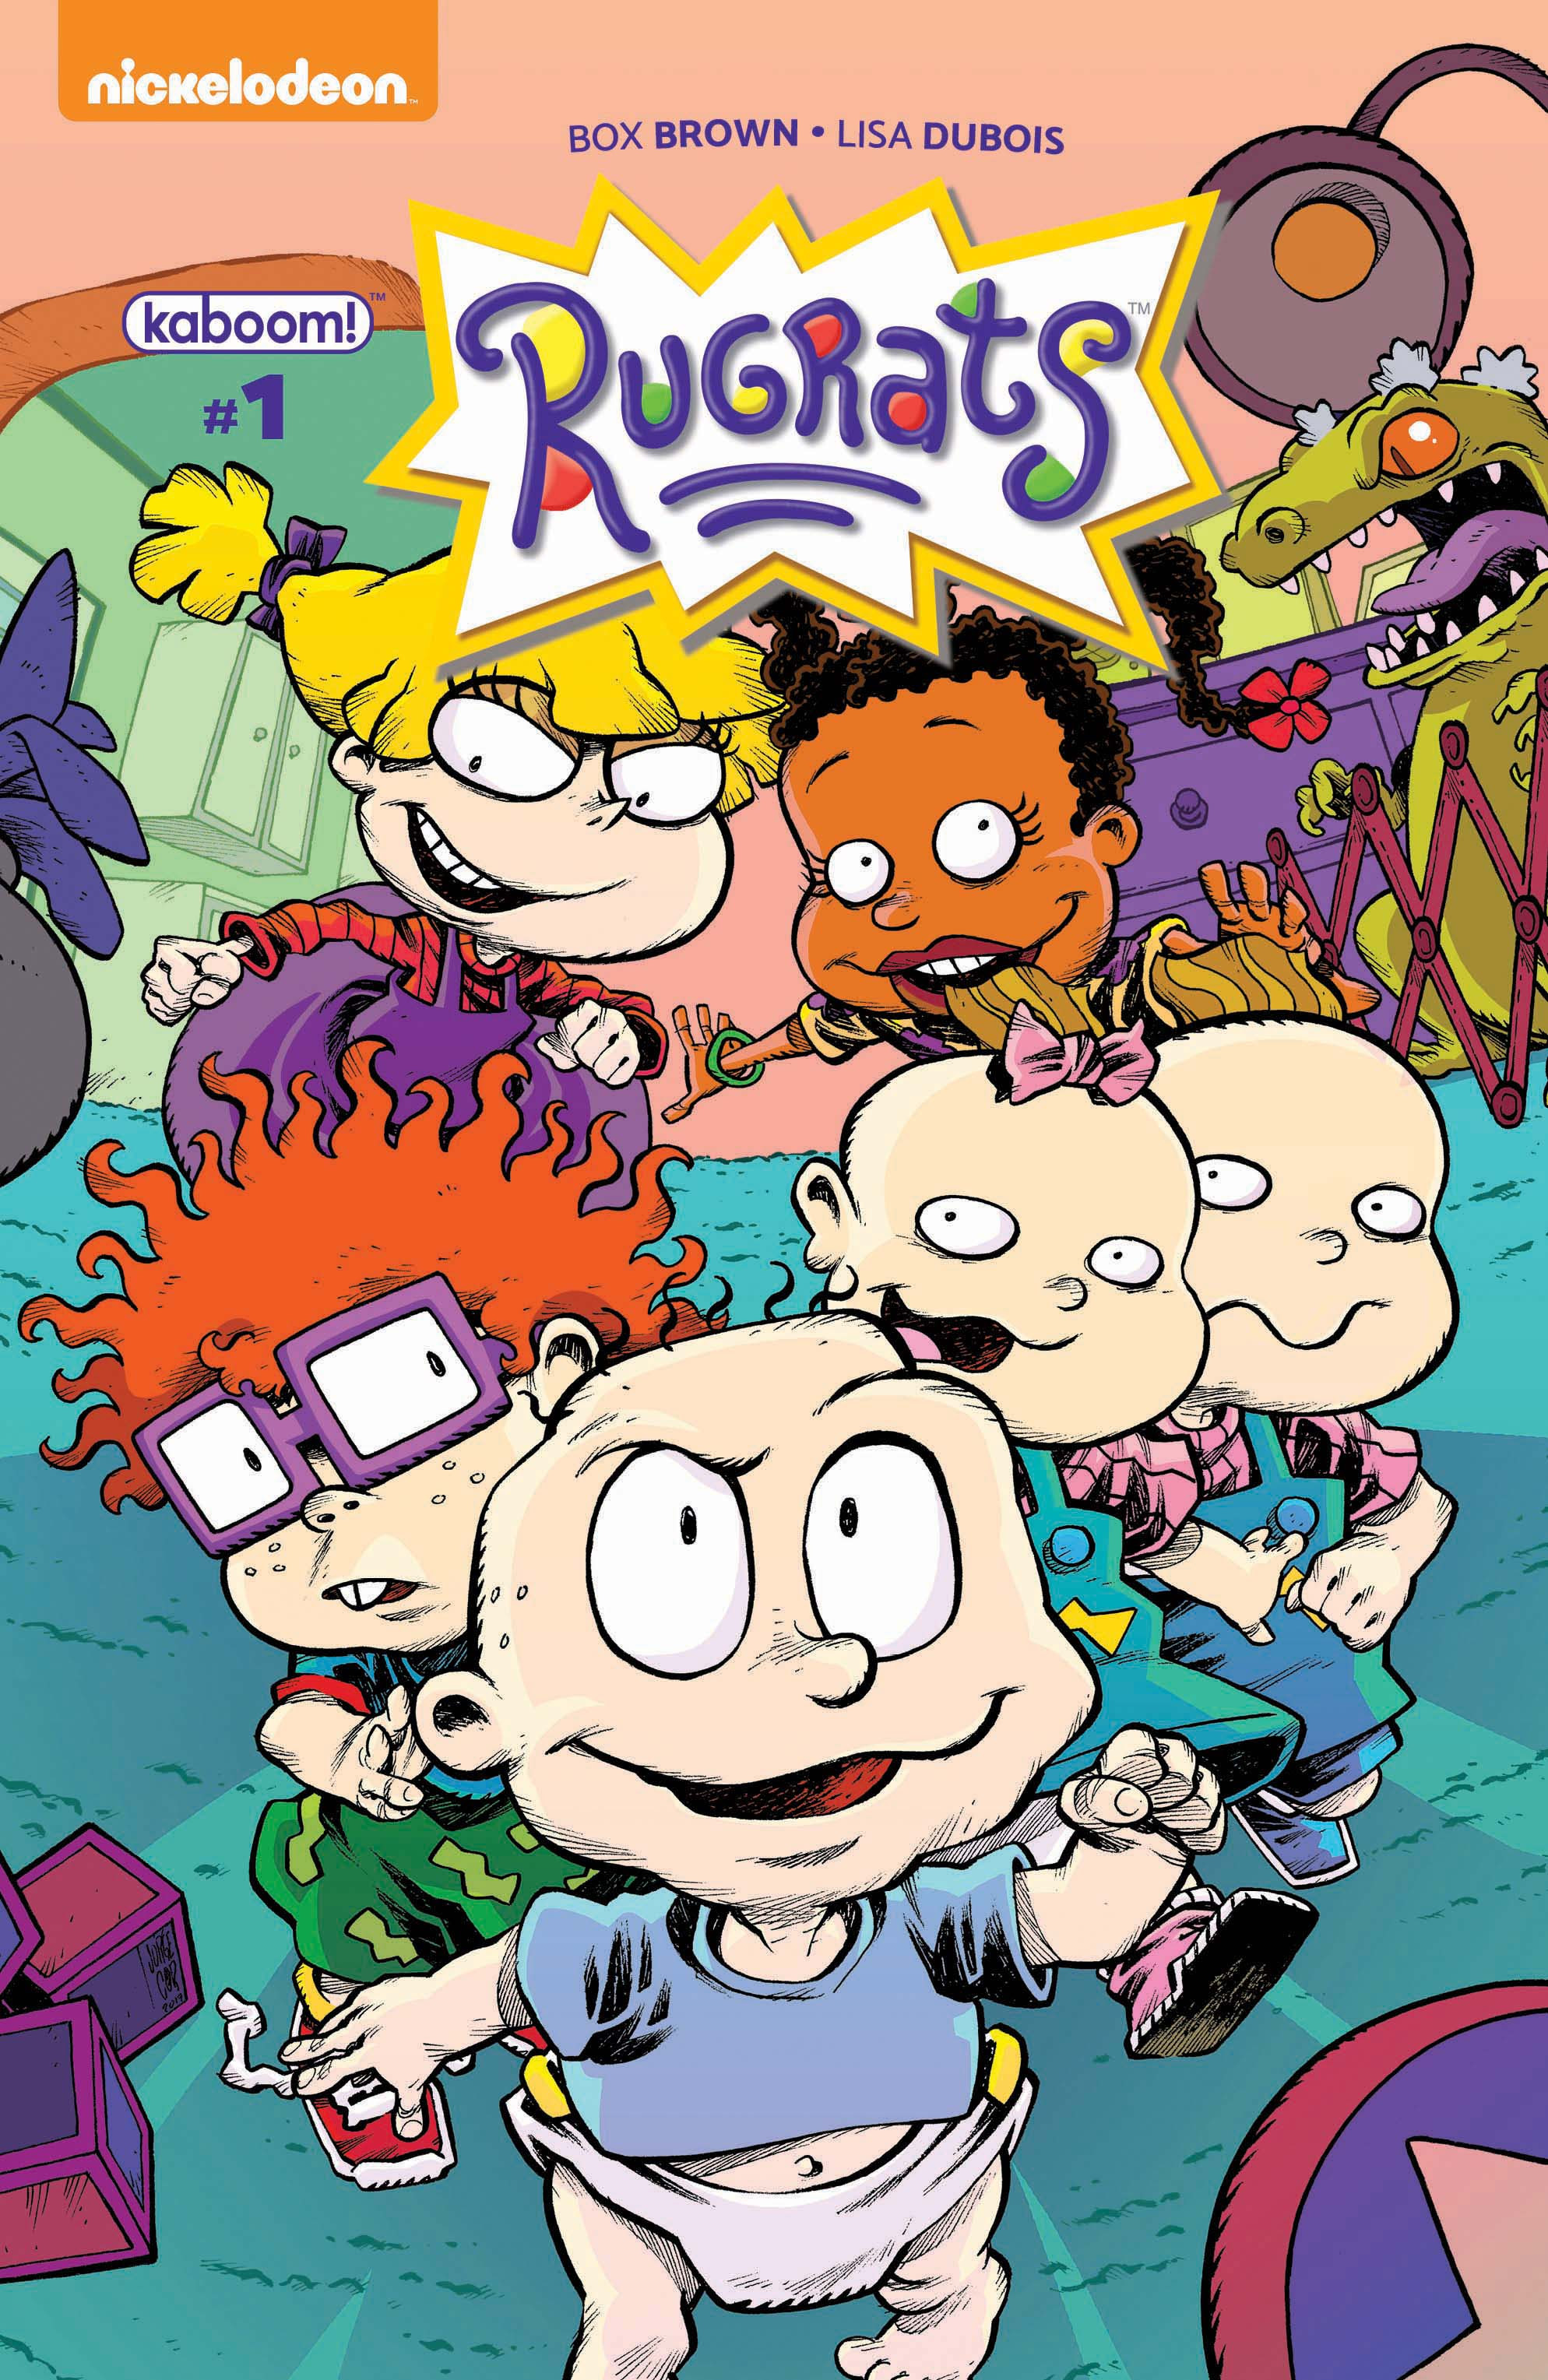 Theyve Partnered With Nickelodeon To Develop Comics Based On Some Of Their Cartoons From The 90s